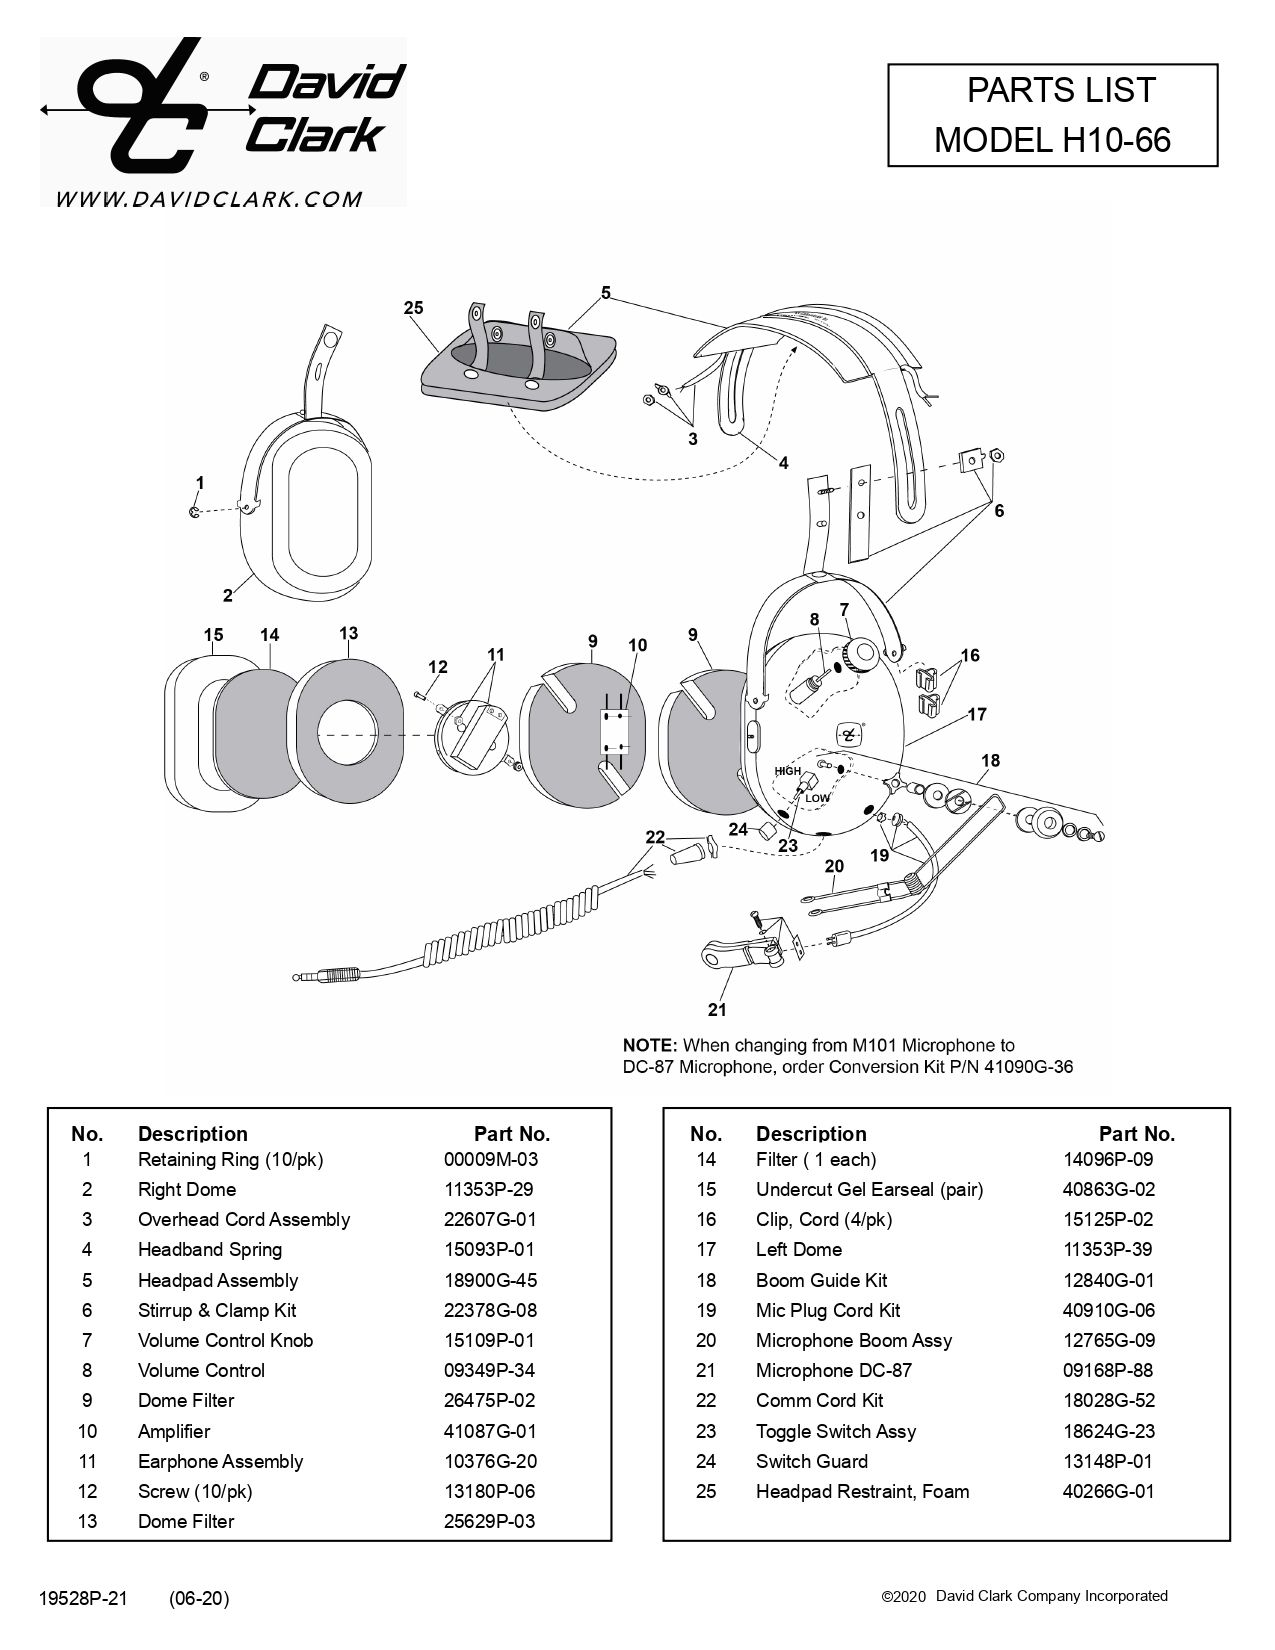 H10-66 PARTS LIST BUCKERBOOK